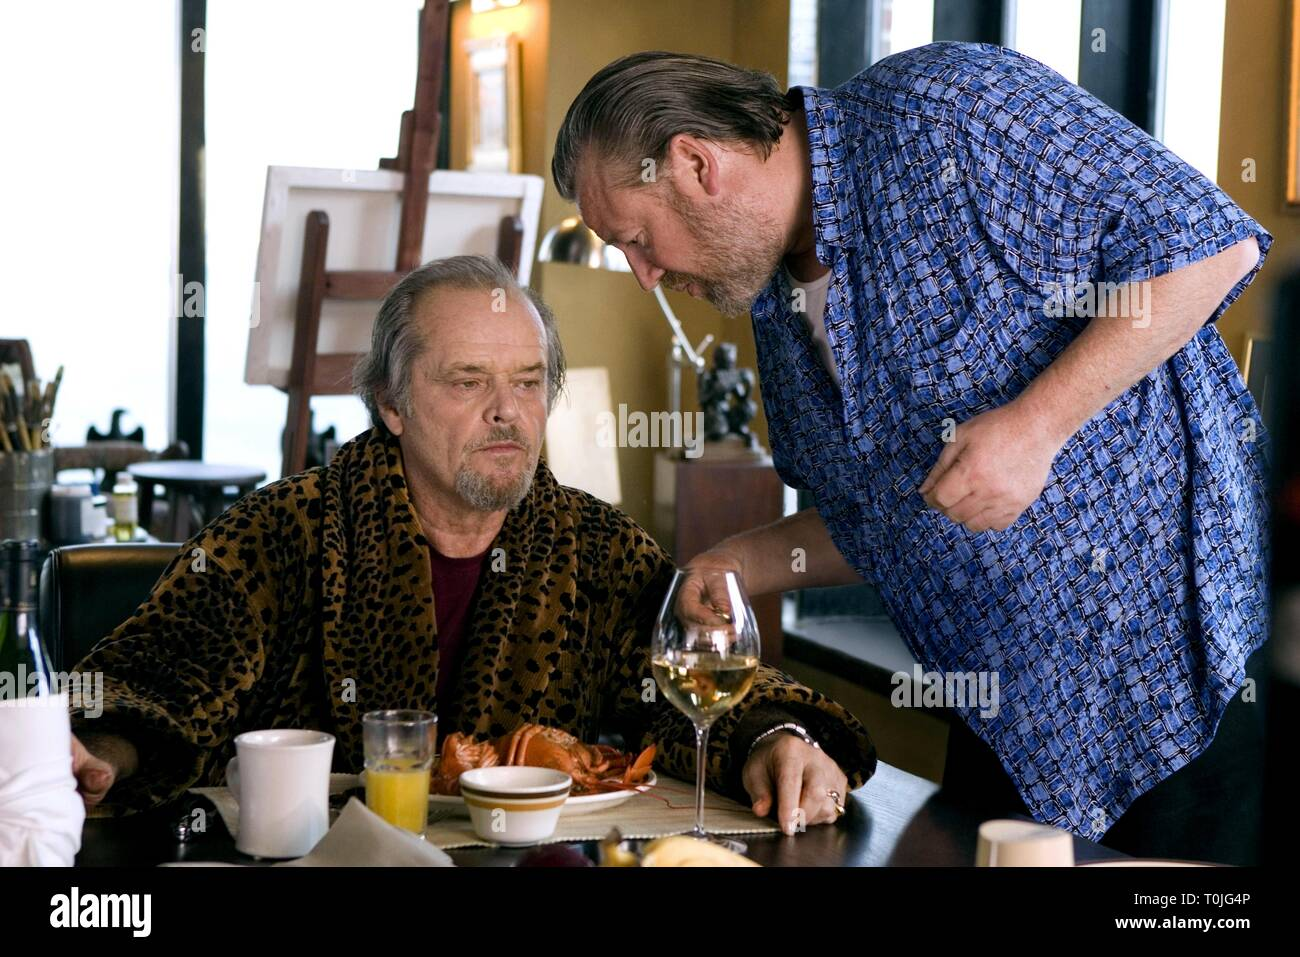 Jack Nicholson Ray Winstone The Departed 2006 Stock Photo Alamy Still, earlier this season, nicholson and his son were also in their seats to watch the lakers, in a winning effort against the minnesota timberwolves. https www alamy com jack nicholson ray winstone the departed 2006 image241352966 html